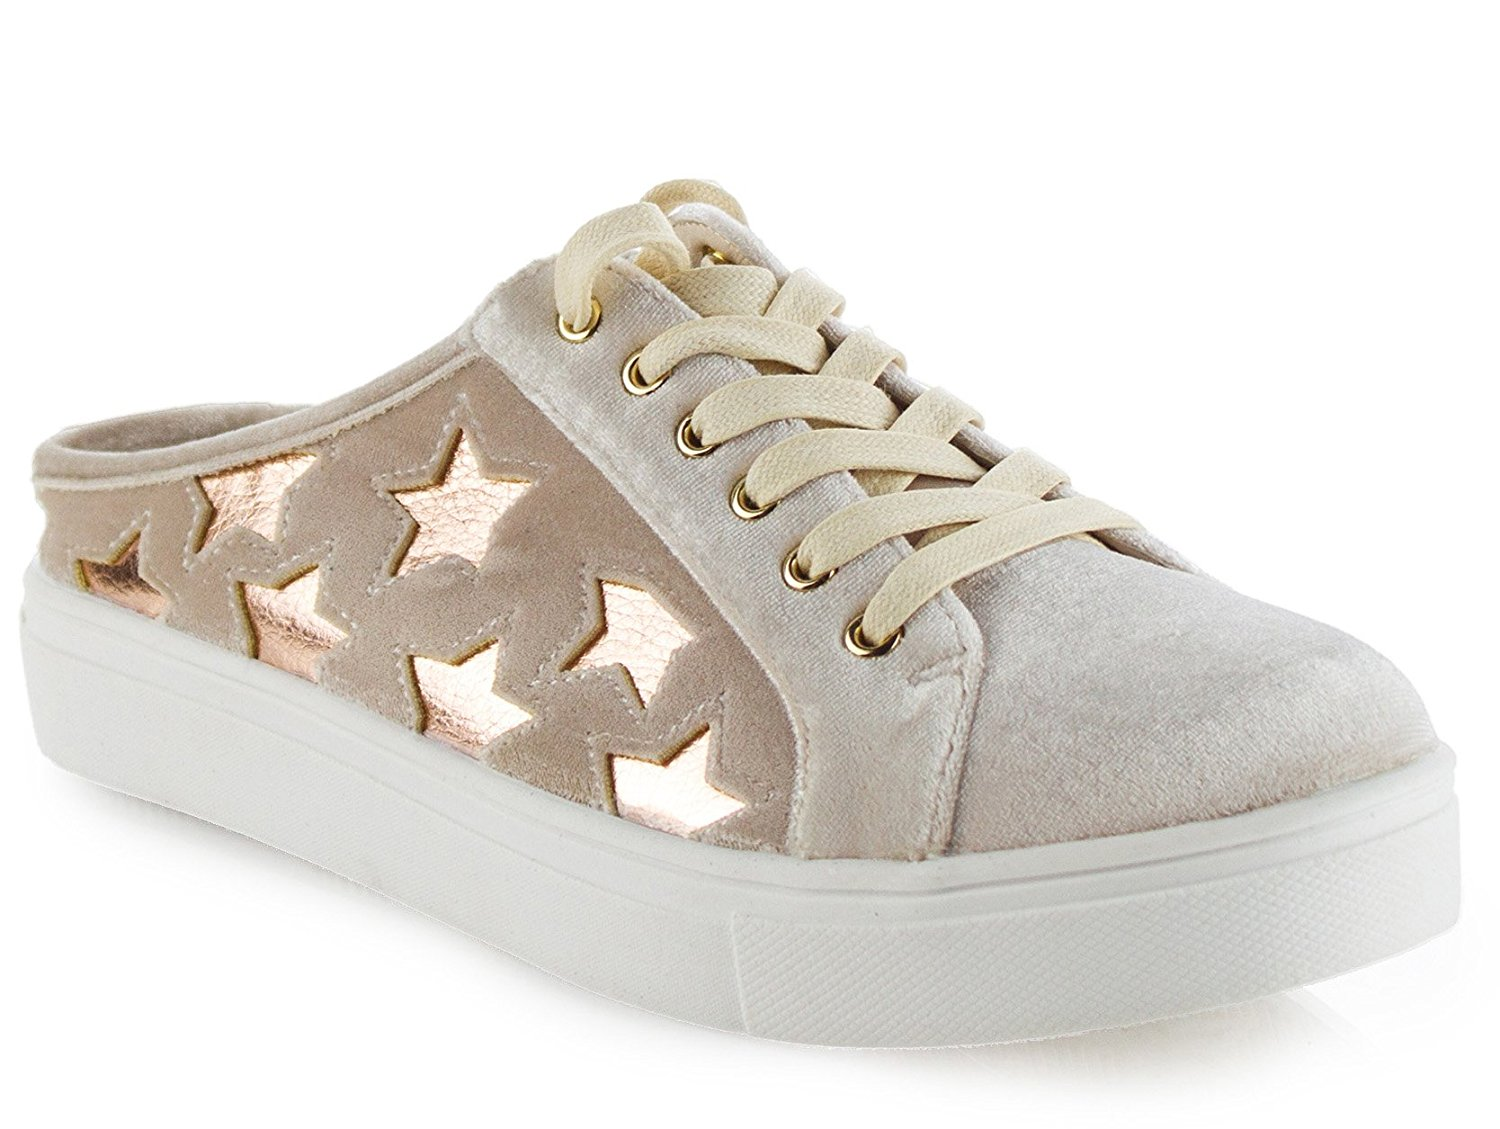 3c766d4121b1f Amazon.com | ROF Embroidered Floral Metallic Lace Up Low Top Sneaker |  Fashion Sneakers